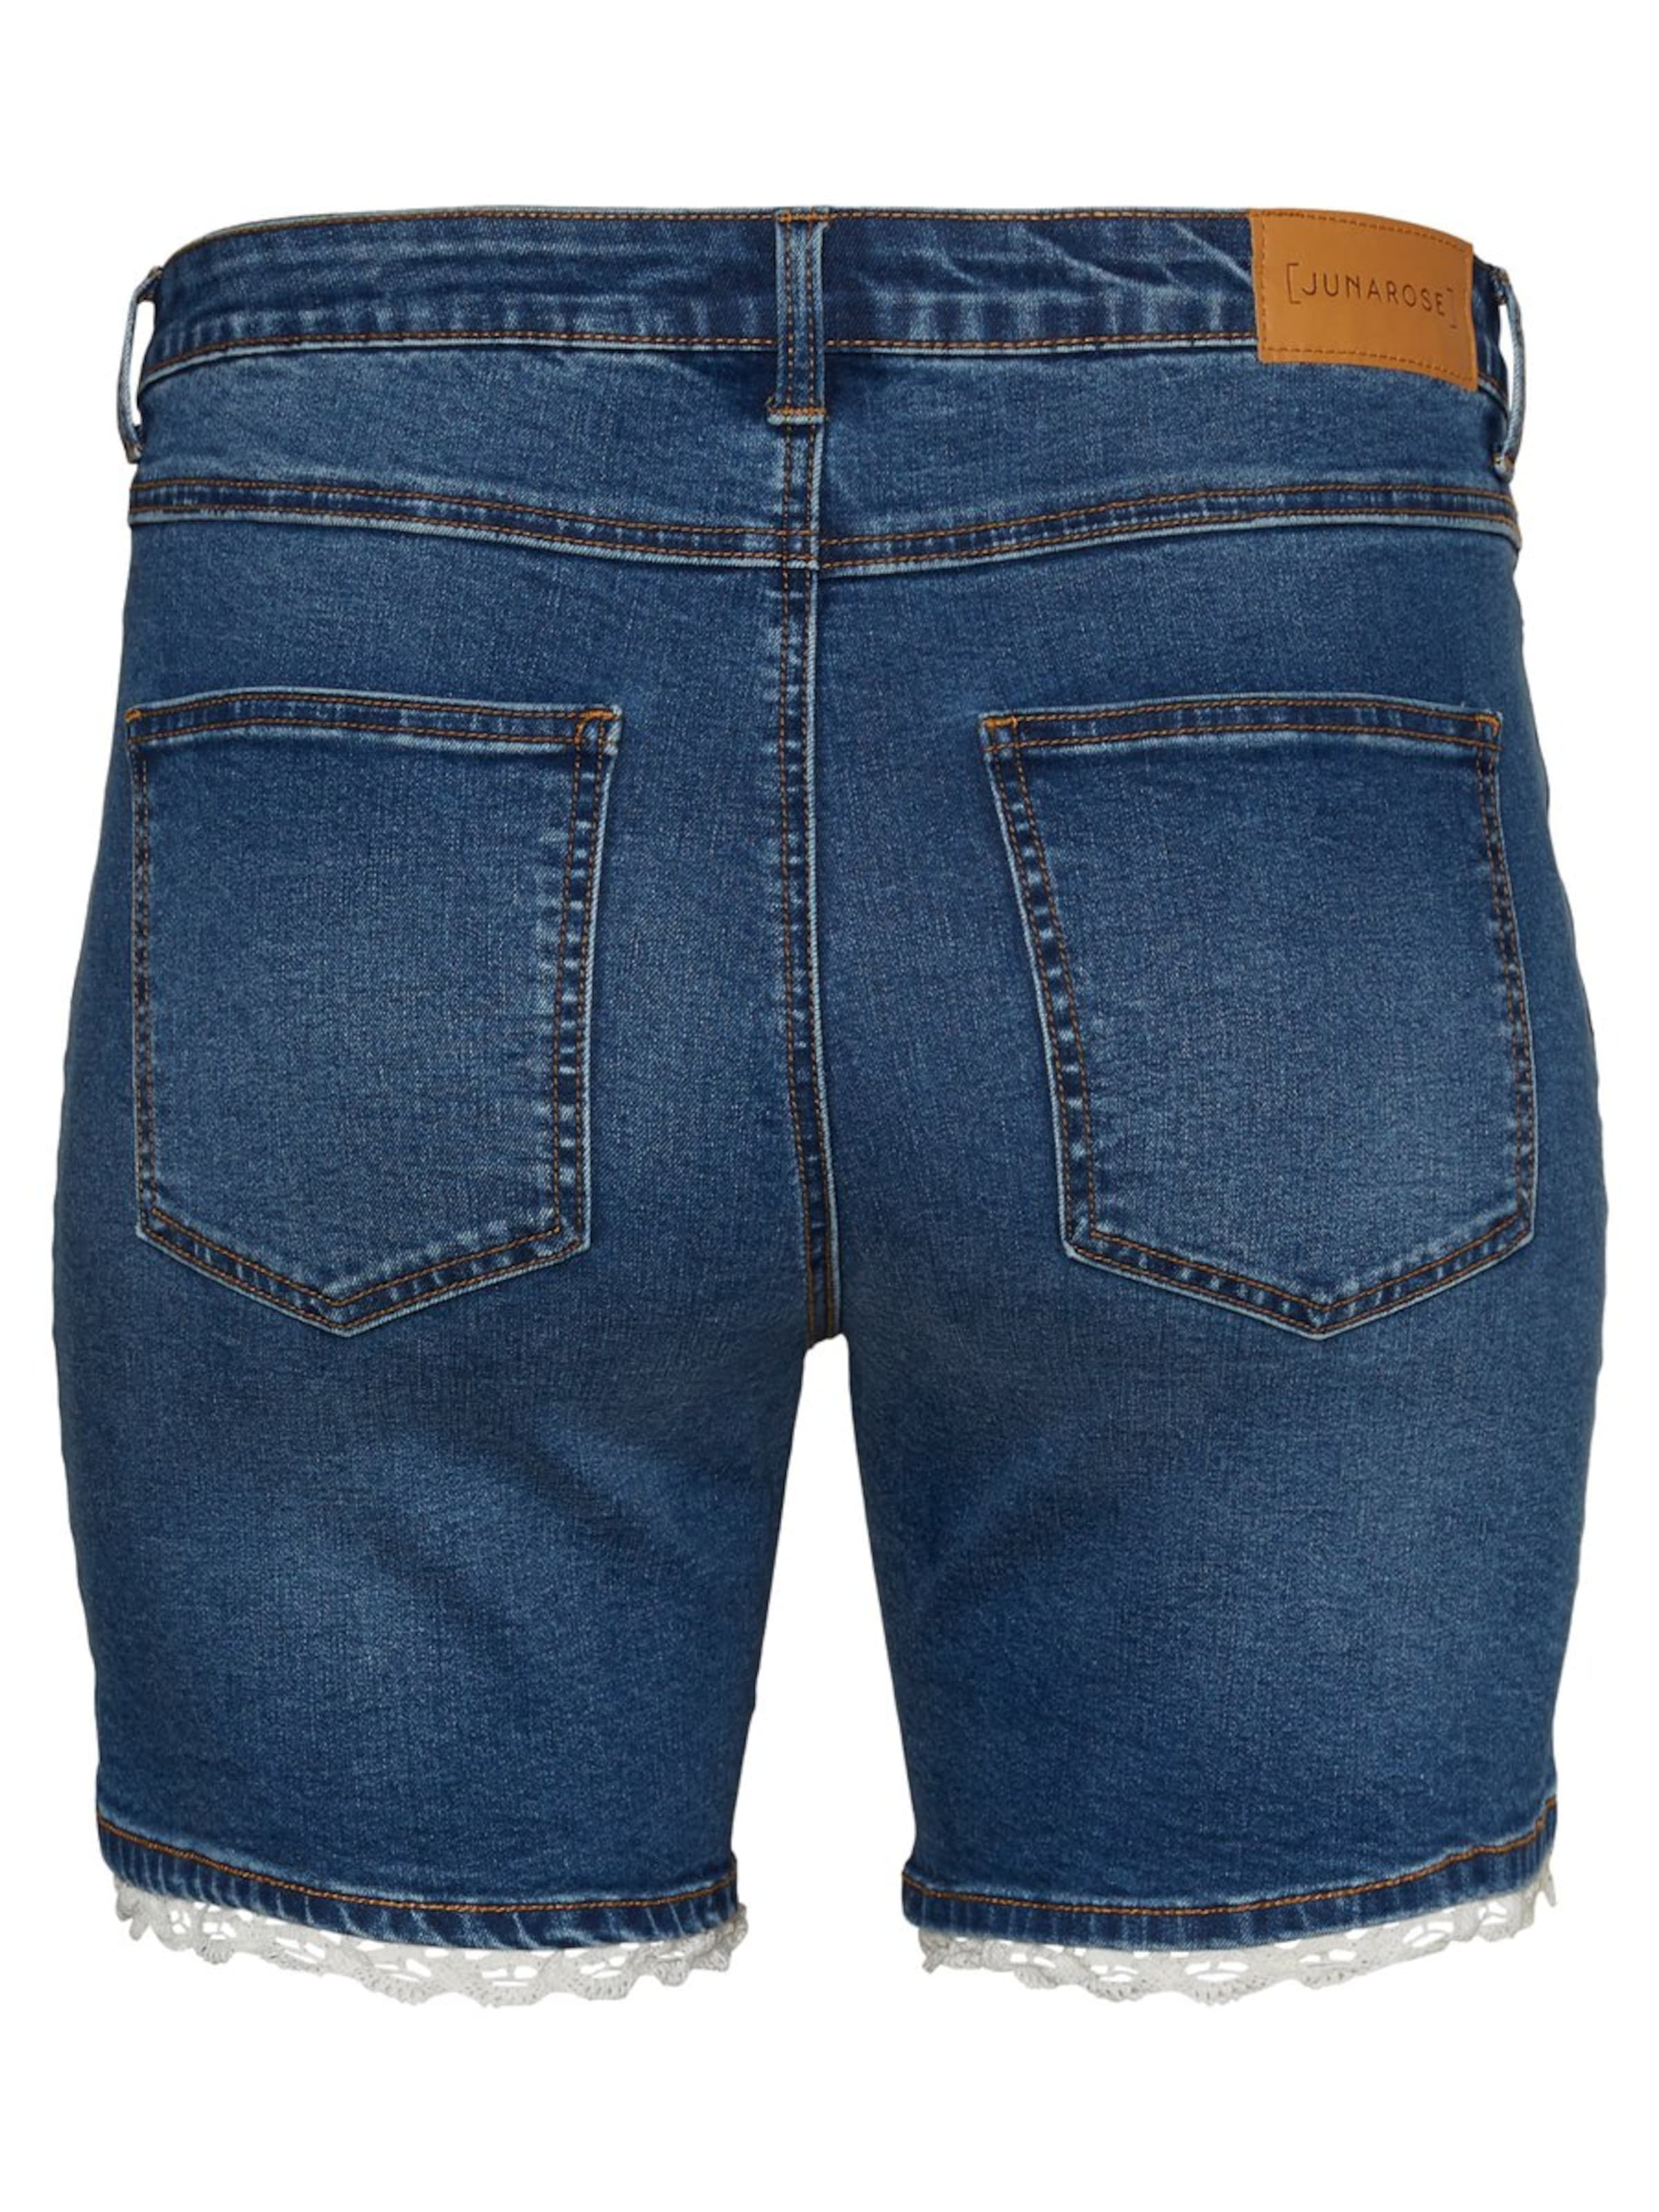 In Junarose Denim In Junarose Blue Shorts Blue Shorts wkZnP8ON0X